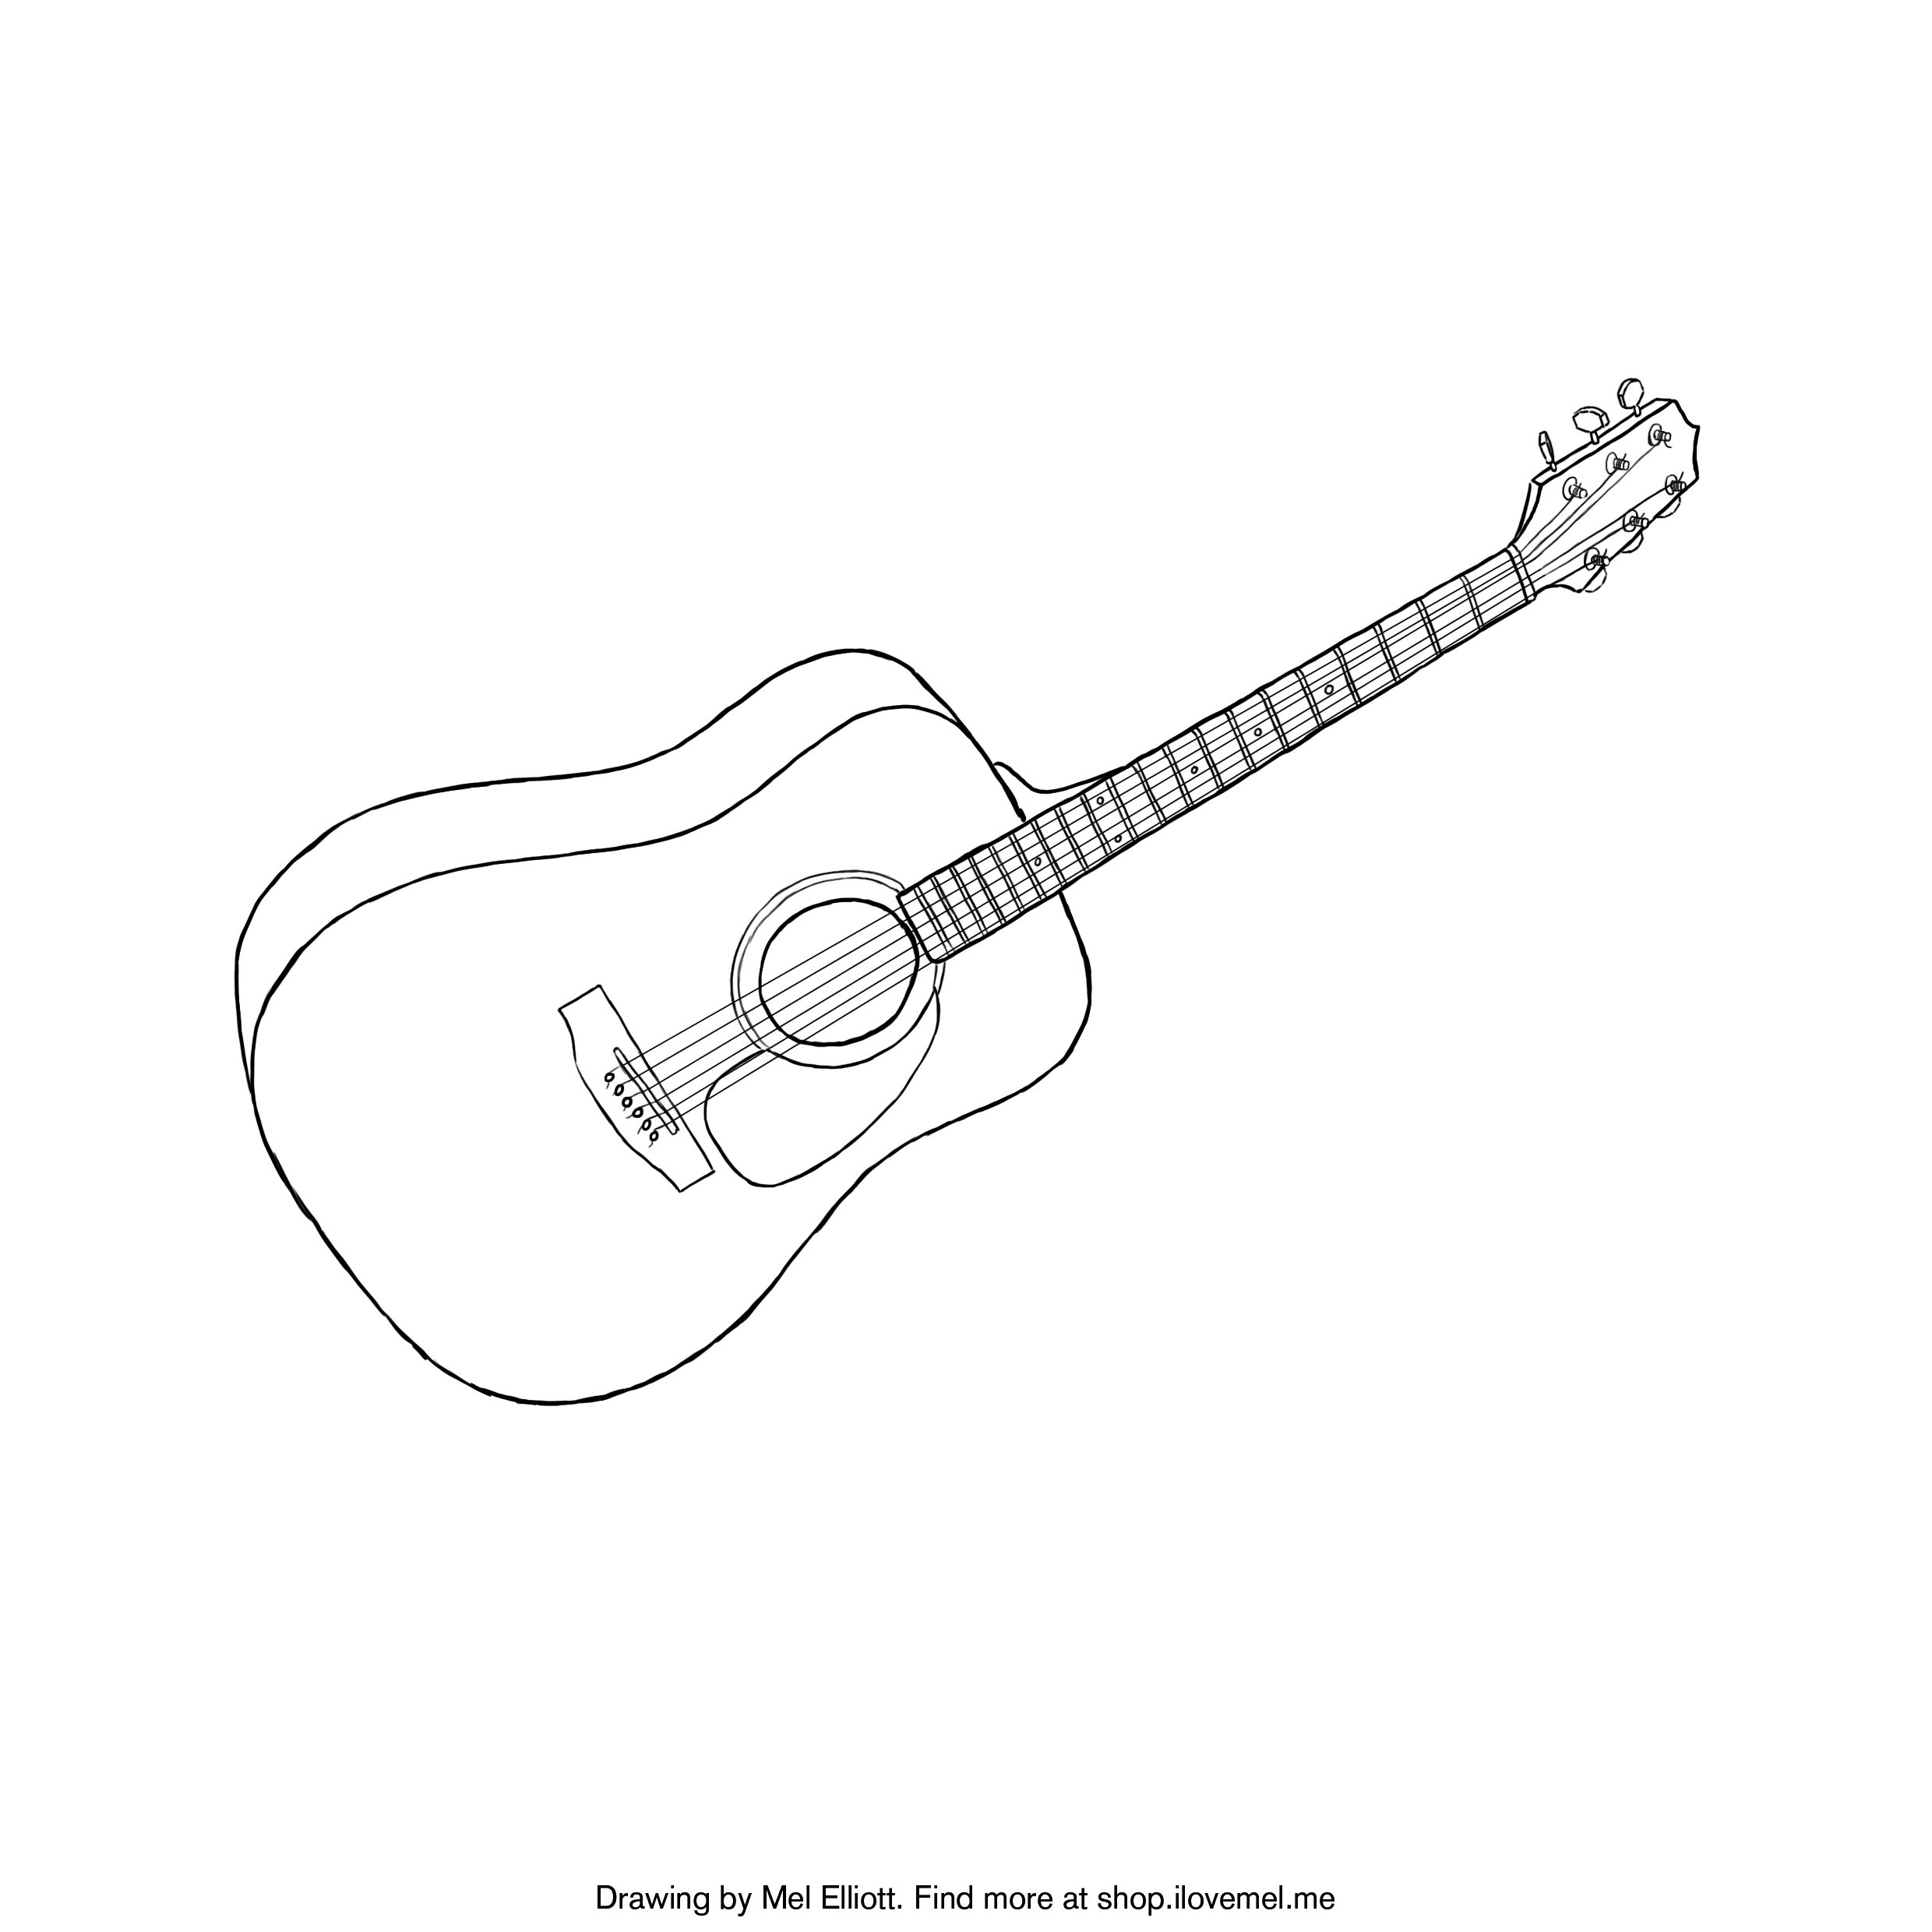 coloring printable guitar guitar coloring pages to download and print for free coloring printable guitar